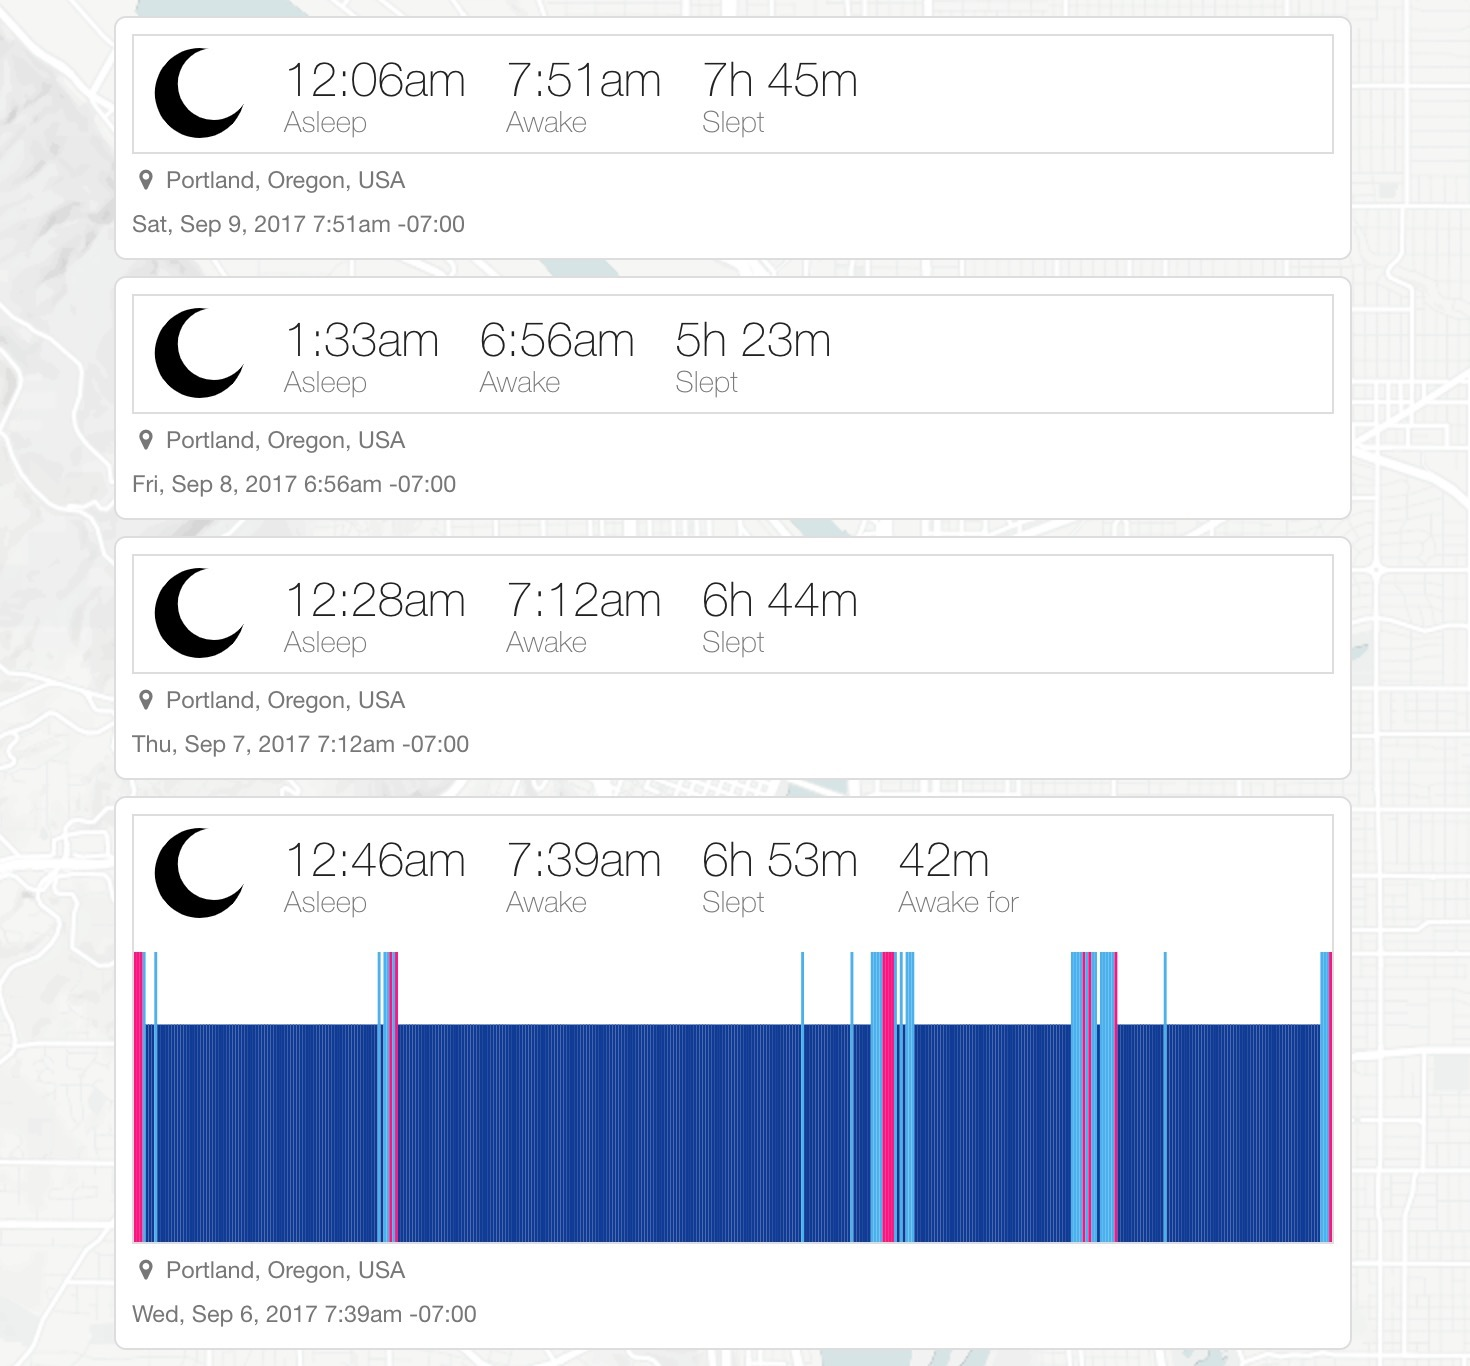 Aaron Parecki Small Wearable Antenna Helps In Finding The Lost A Few Days Of Sleep Data From My Fitbit But Thankfully I Was Able To Reverse Engineer It Using Logs Https Inthemomentio